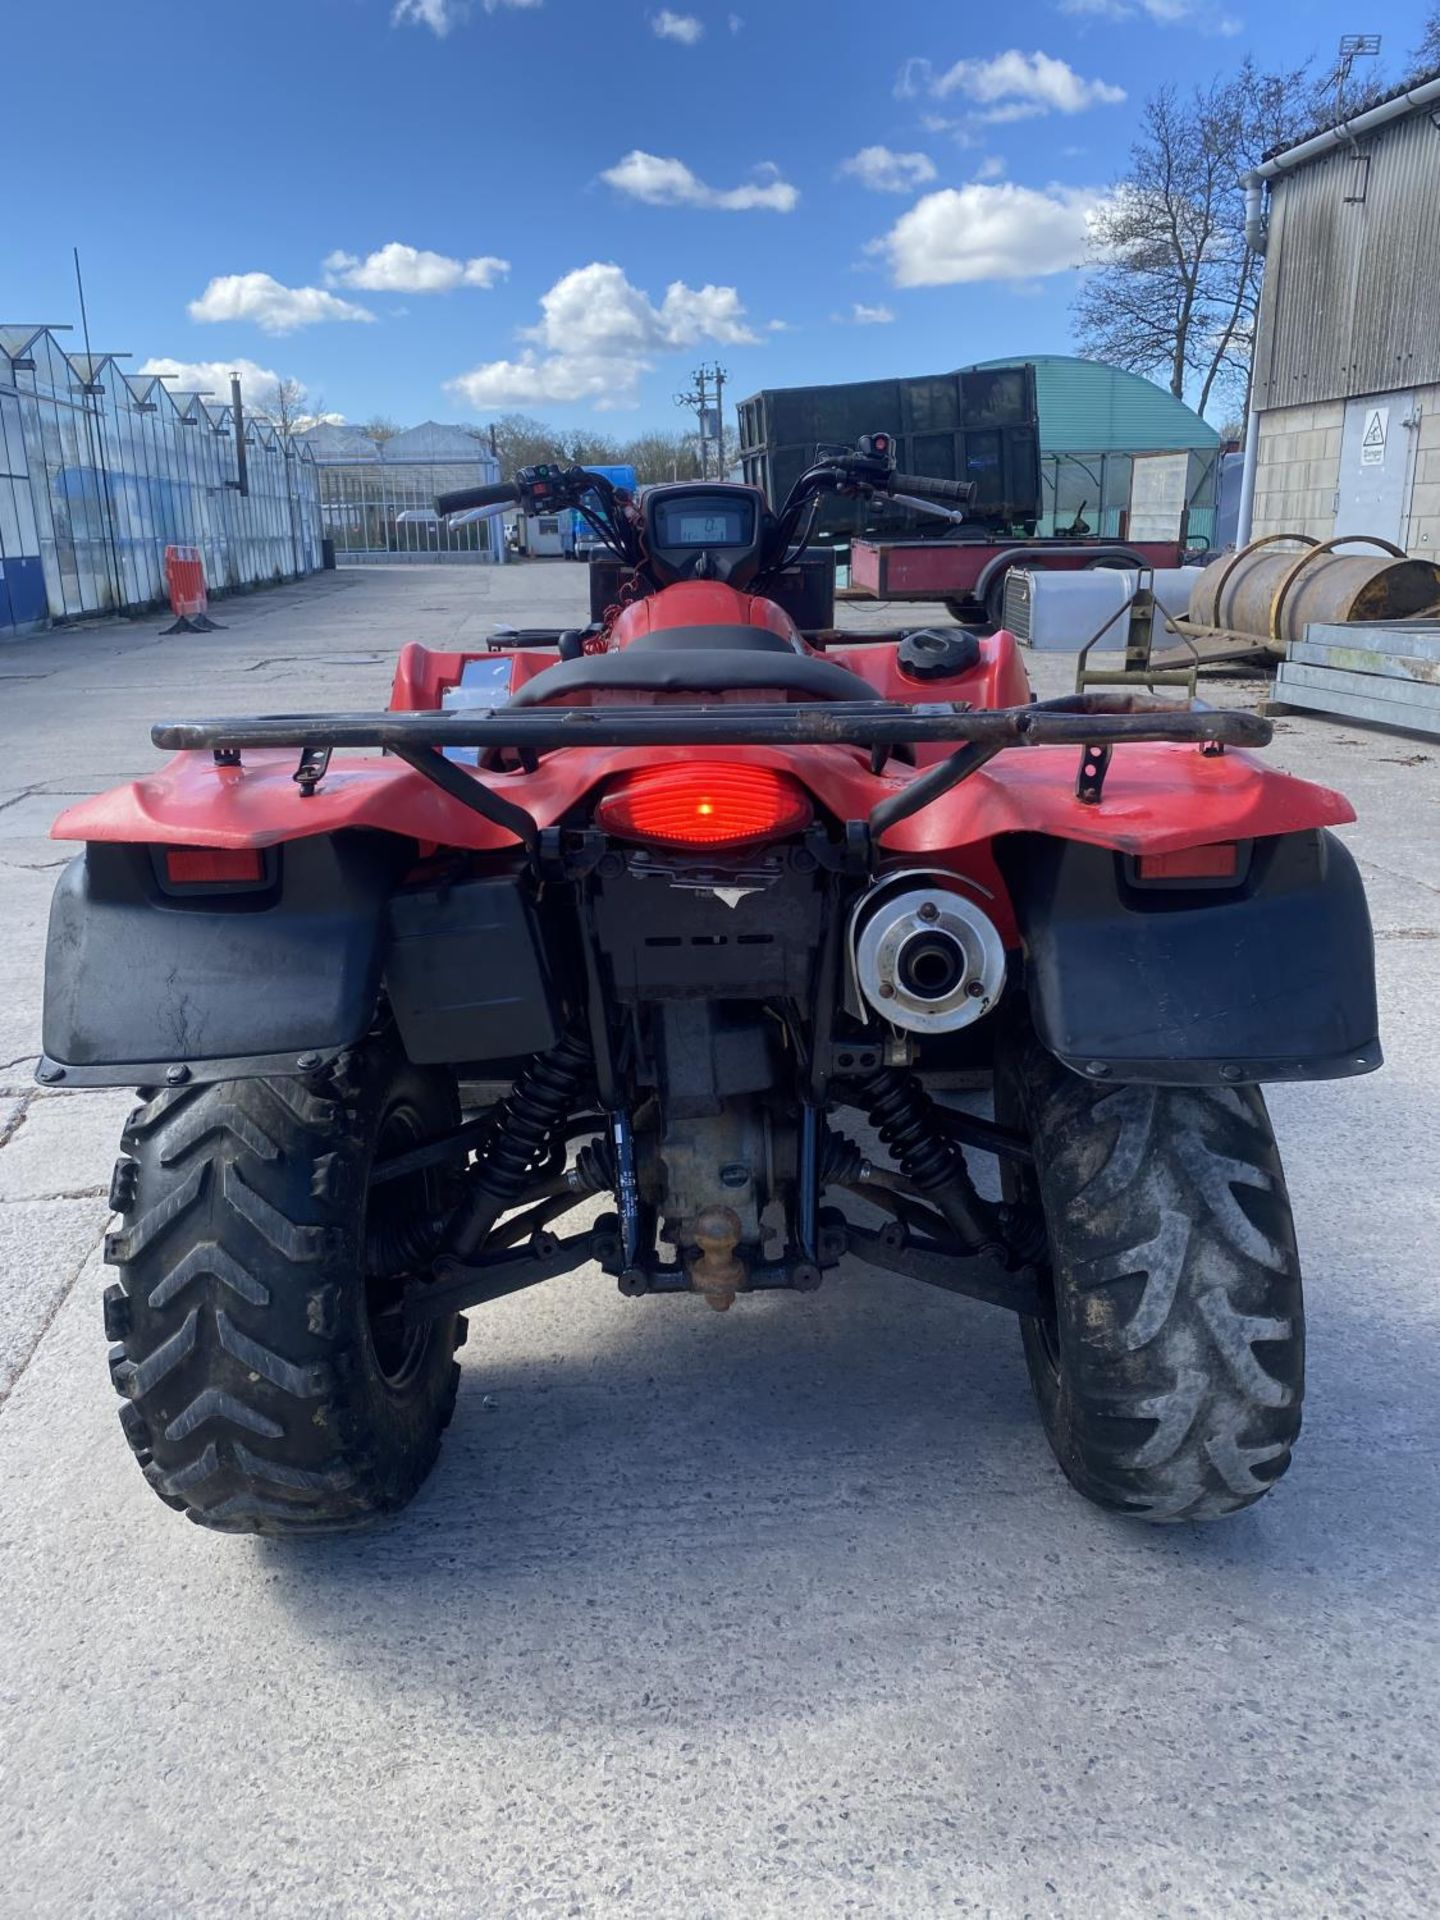 A 2014 SUZUKI KING QUAD, 500 CC WITH POWER STEERING - SEE VIDEO OF VEHICLE STARTING AND RUNNING AT - Image 5 of 9